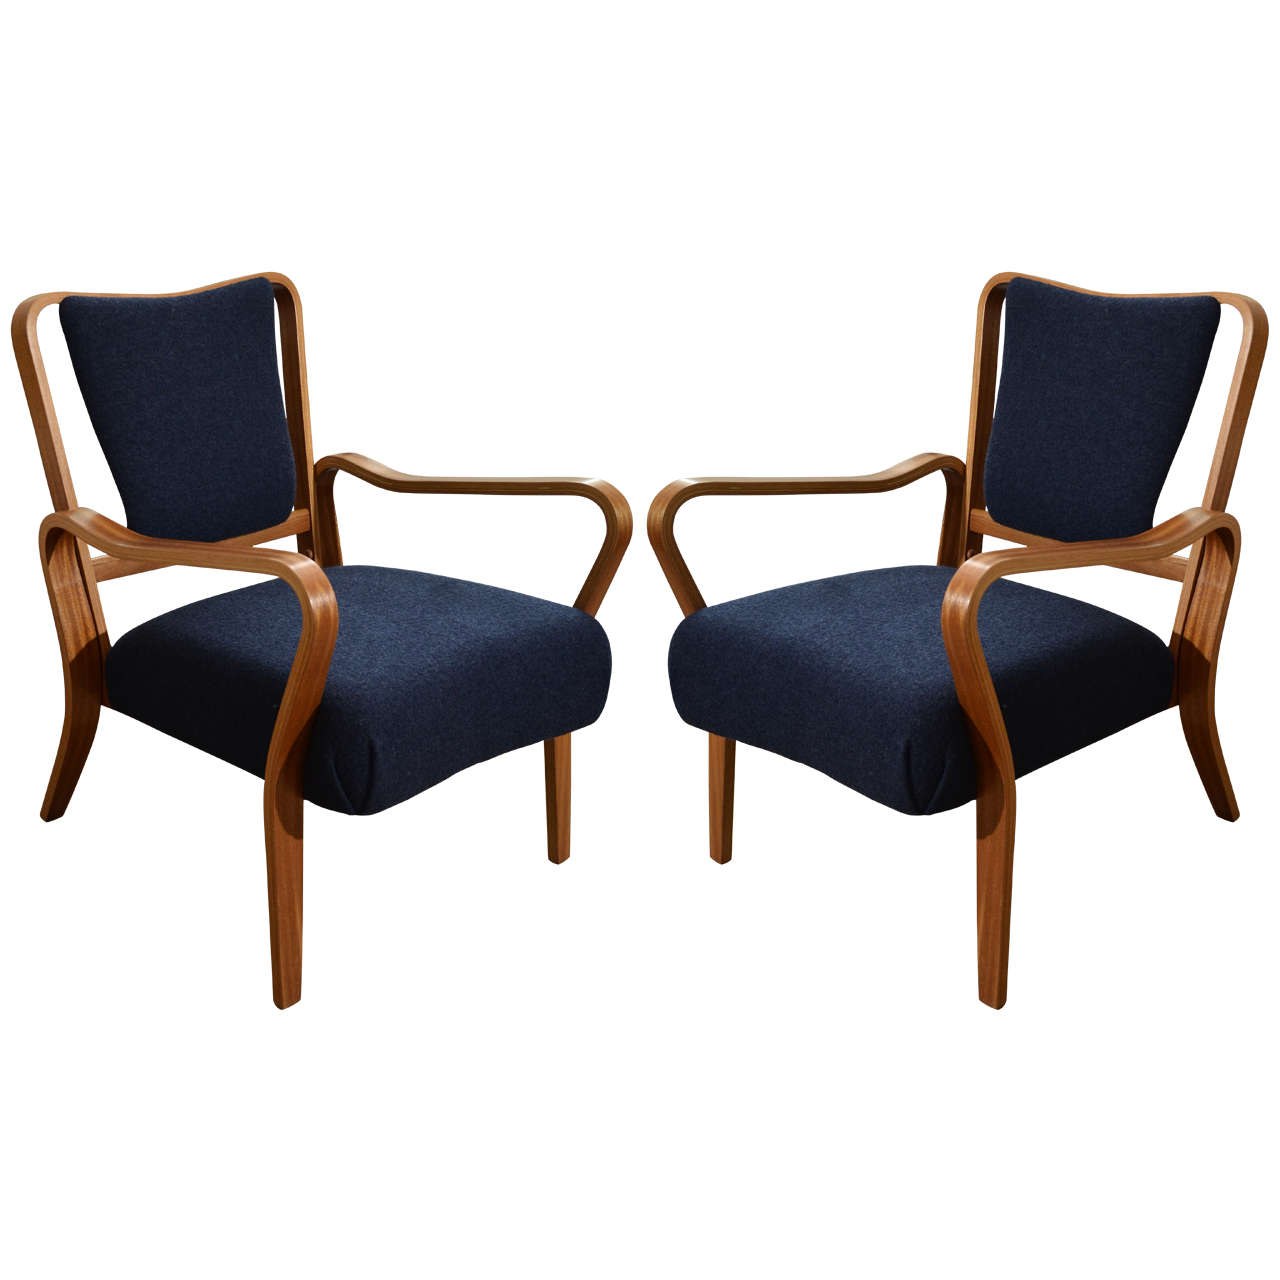 """Pair of 1948 """"Linden"""" Beech Armchairs by G.A. Jenkins for Tecta"""